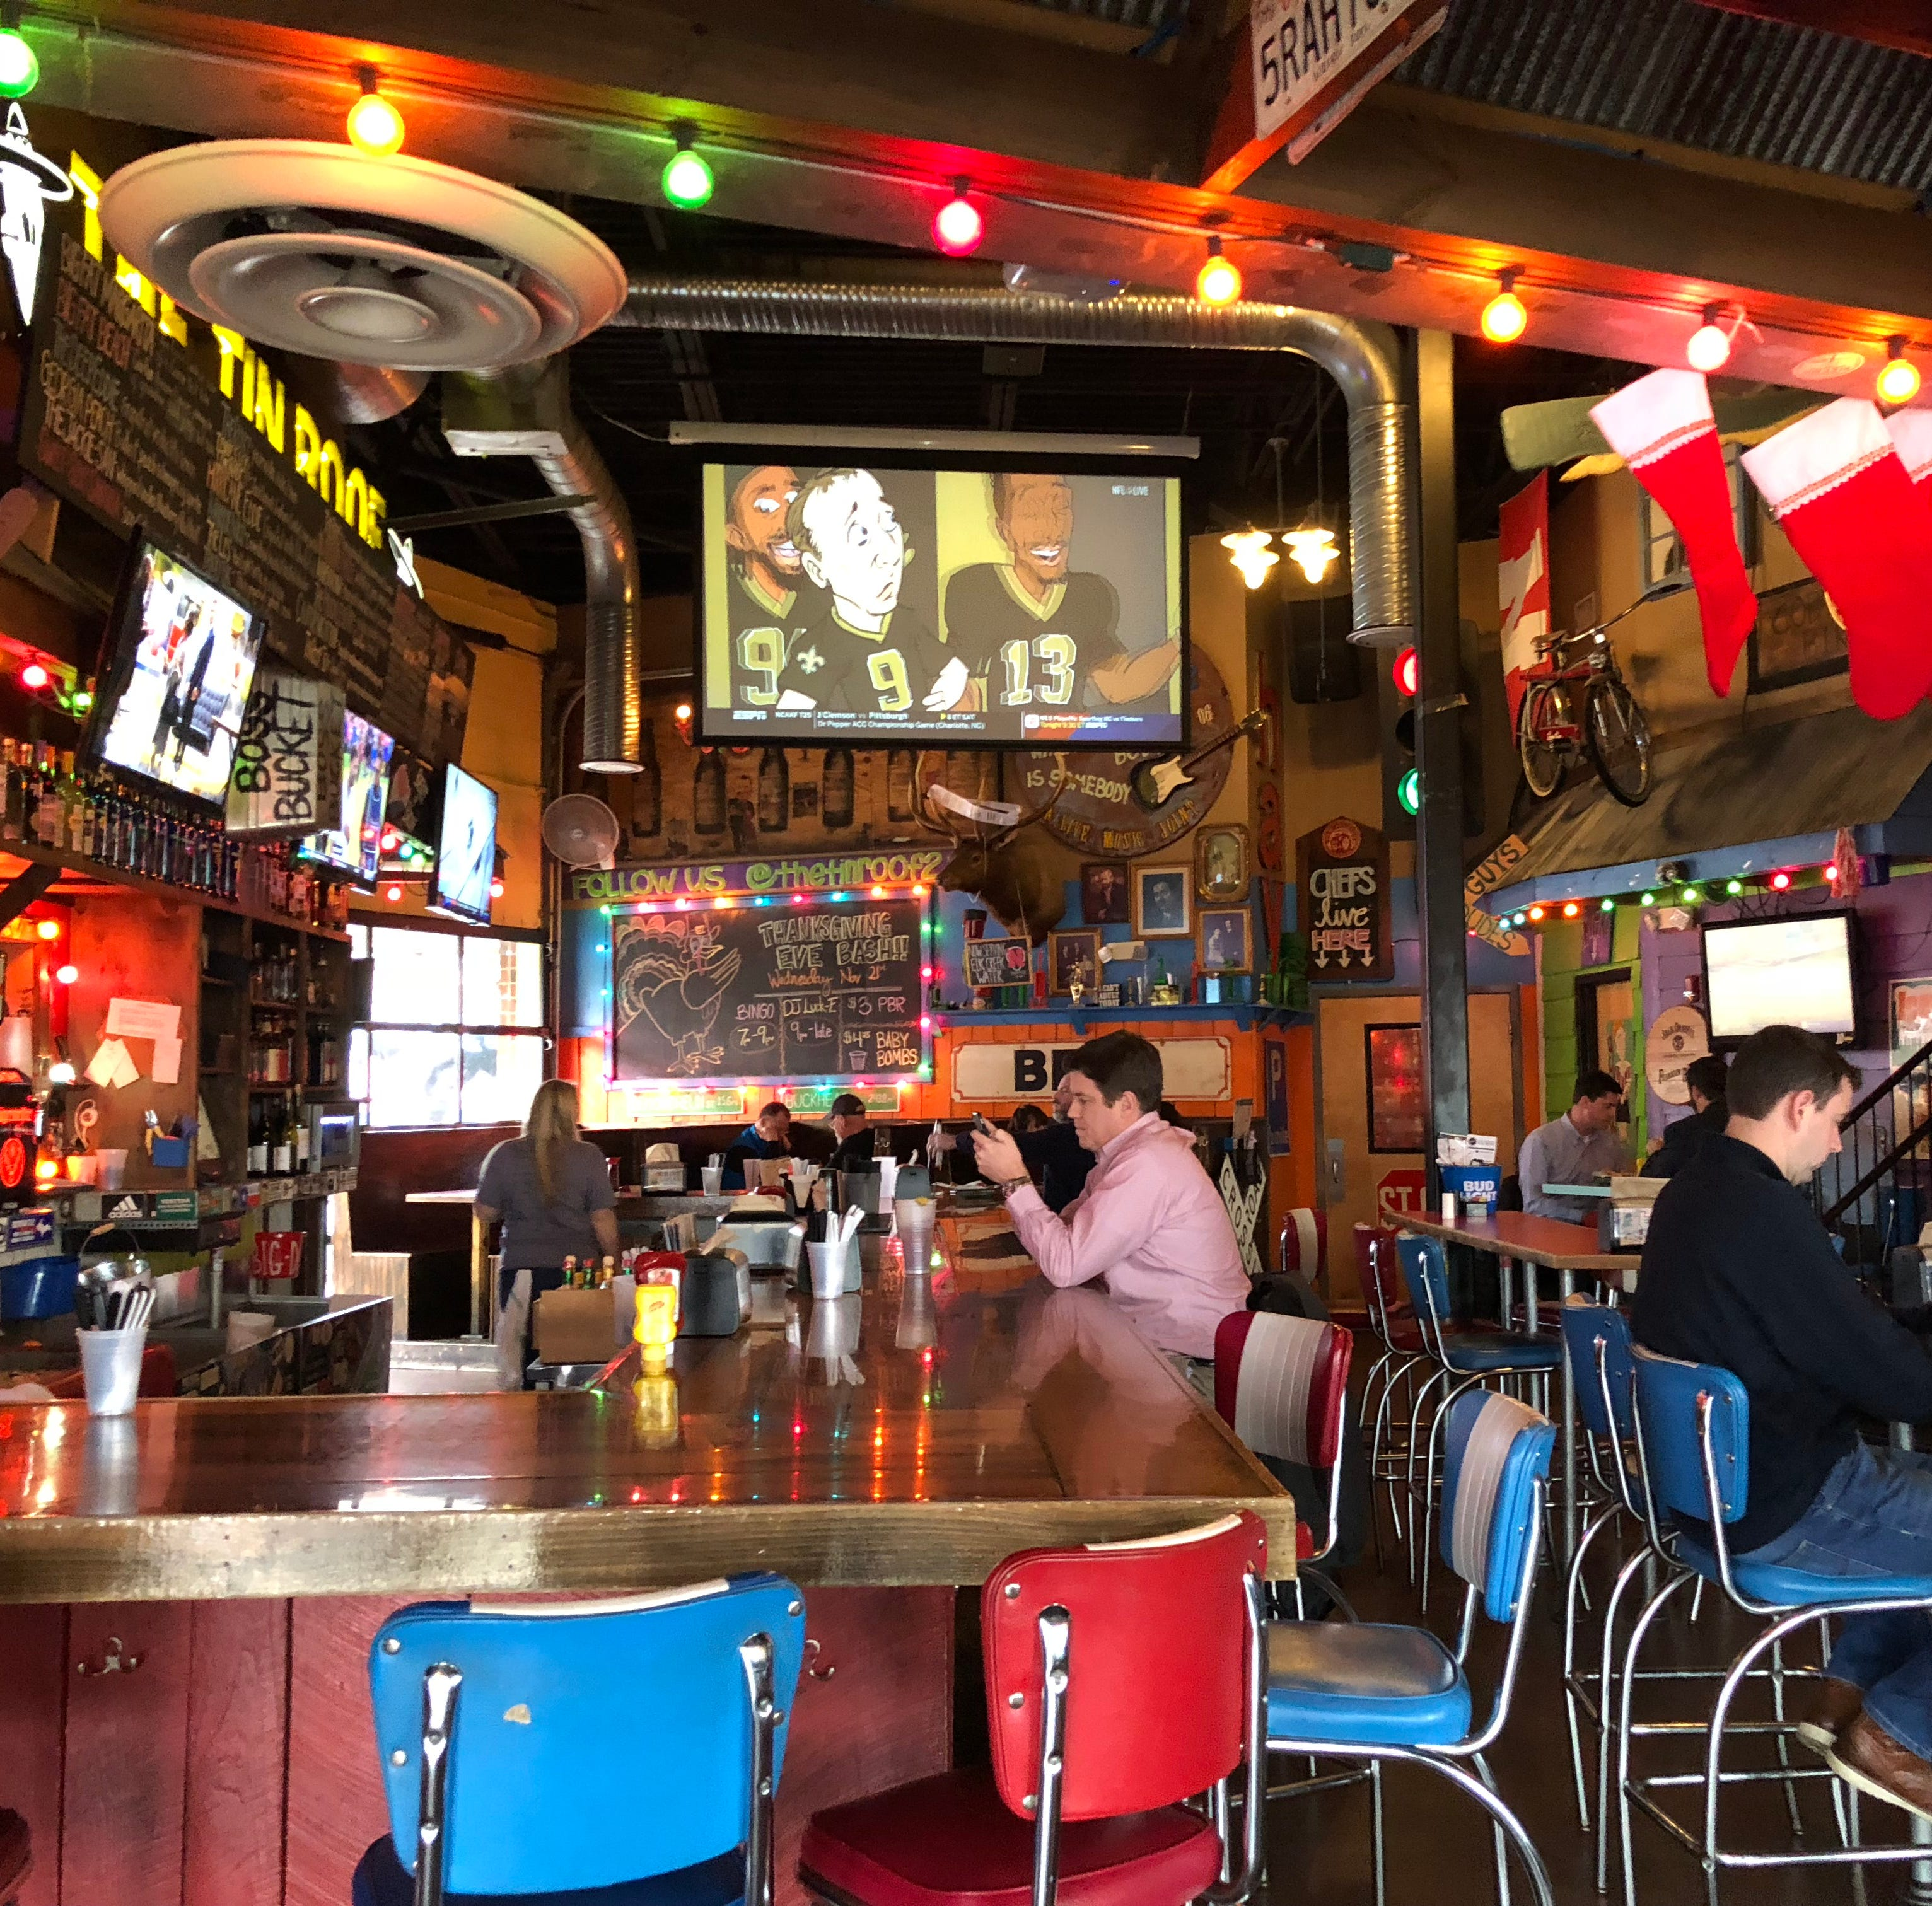 Tin Roof 2 in Cool Springs offers a festive, quick lunch for suits and sweats alike